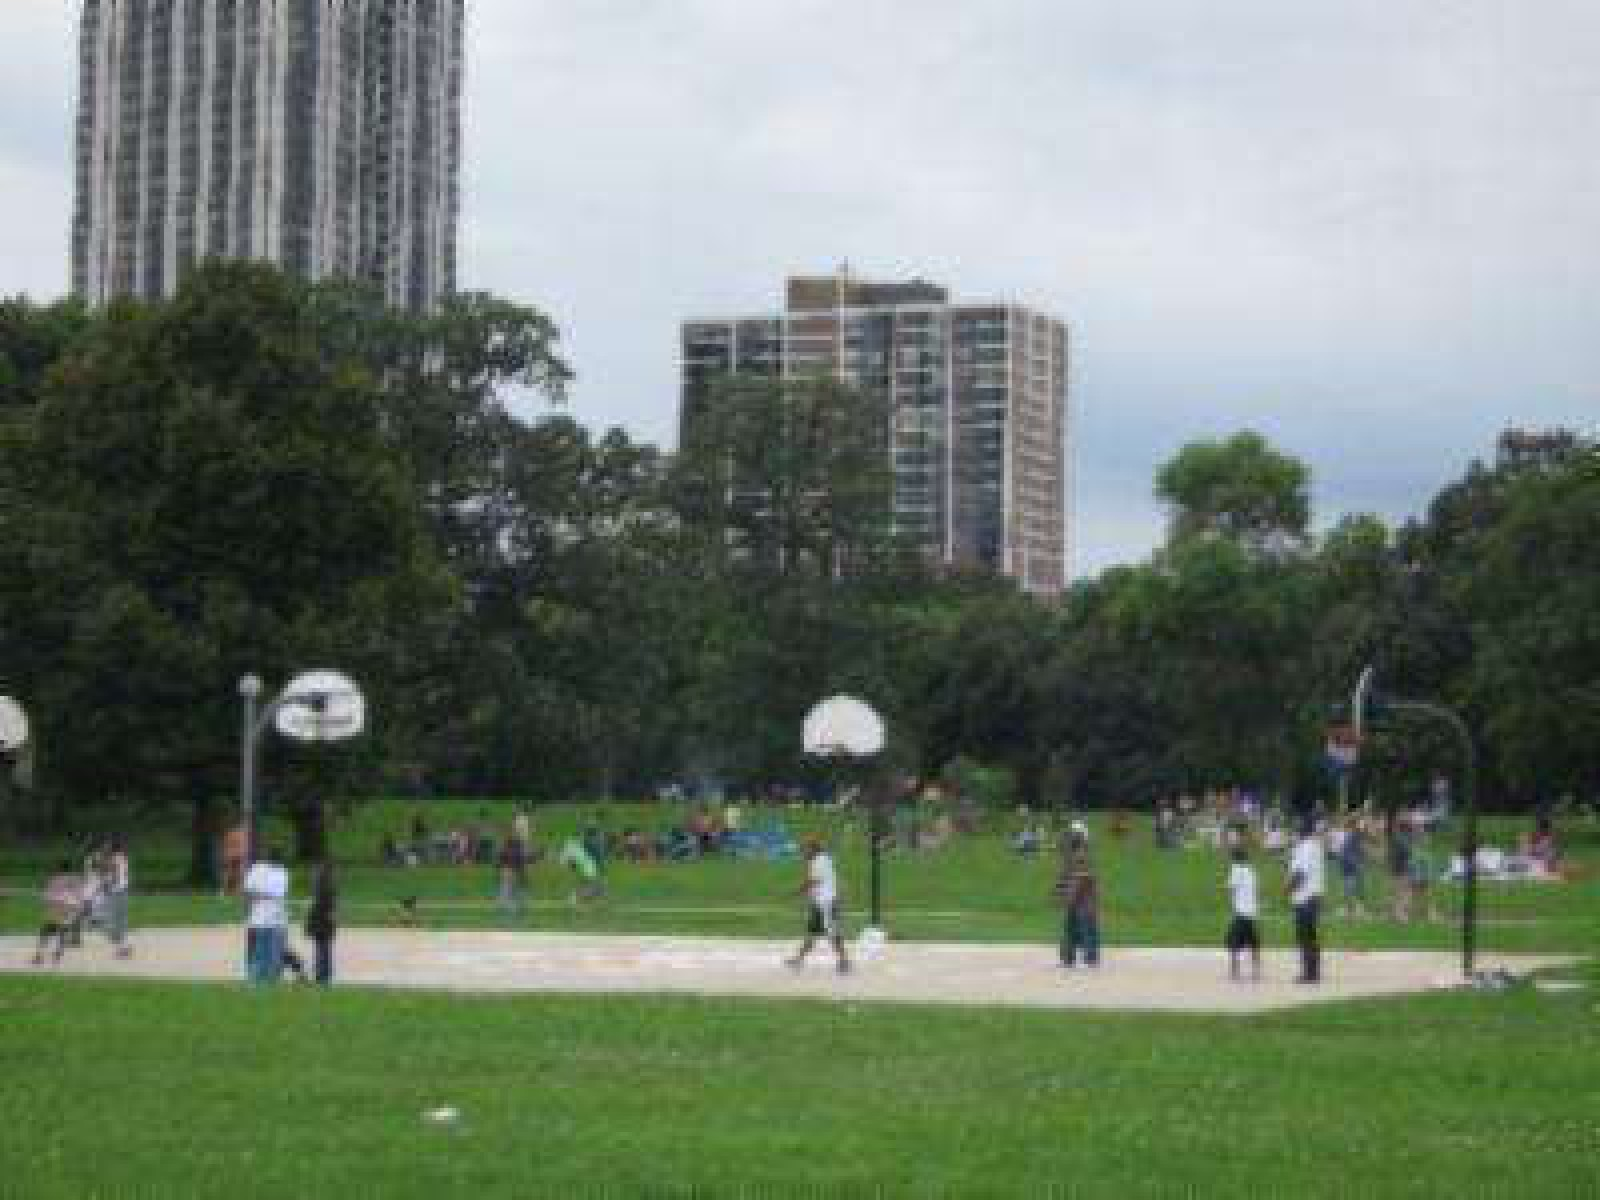 Lincoln Park, Chicago, IL, United States